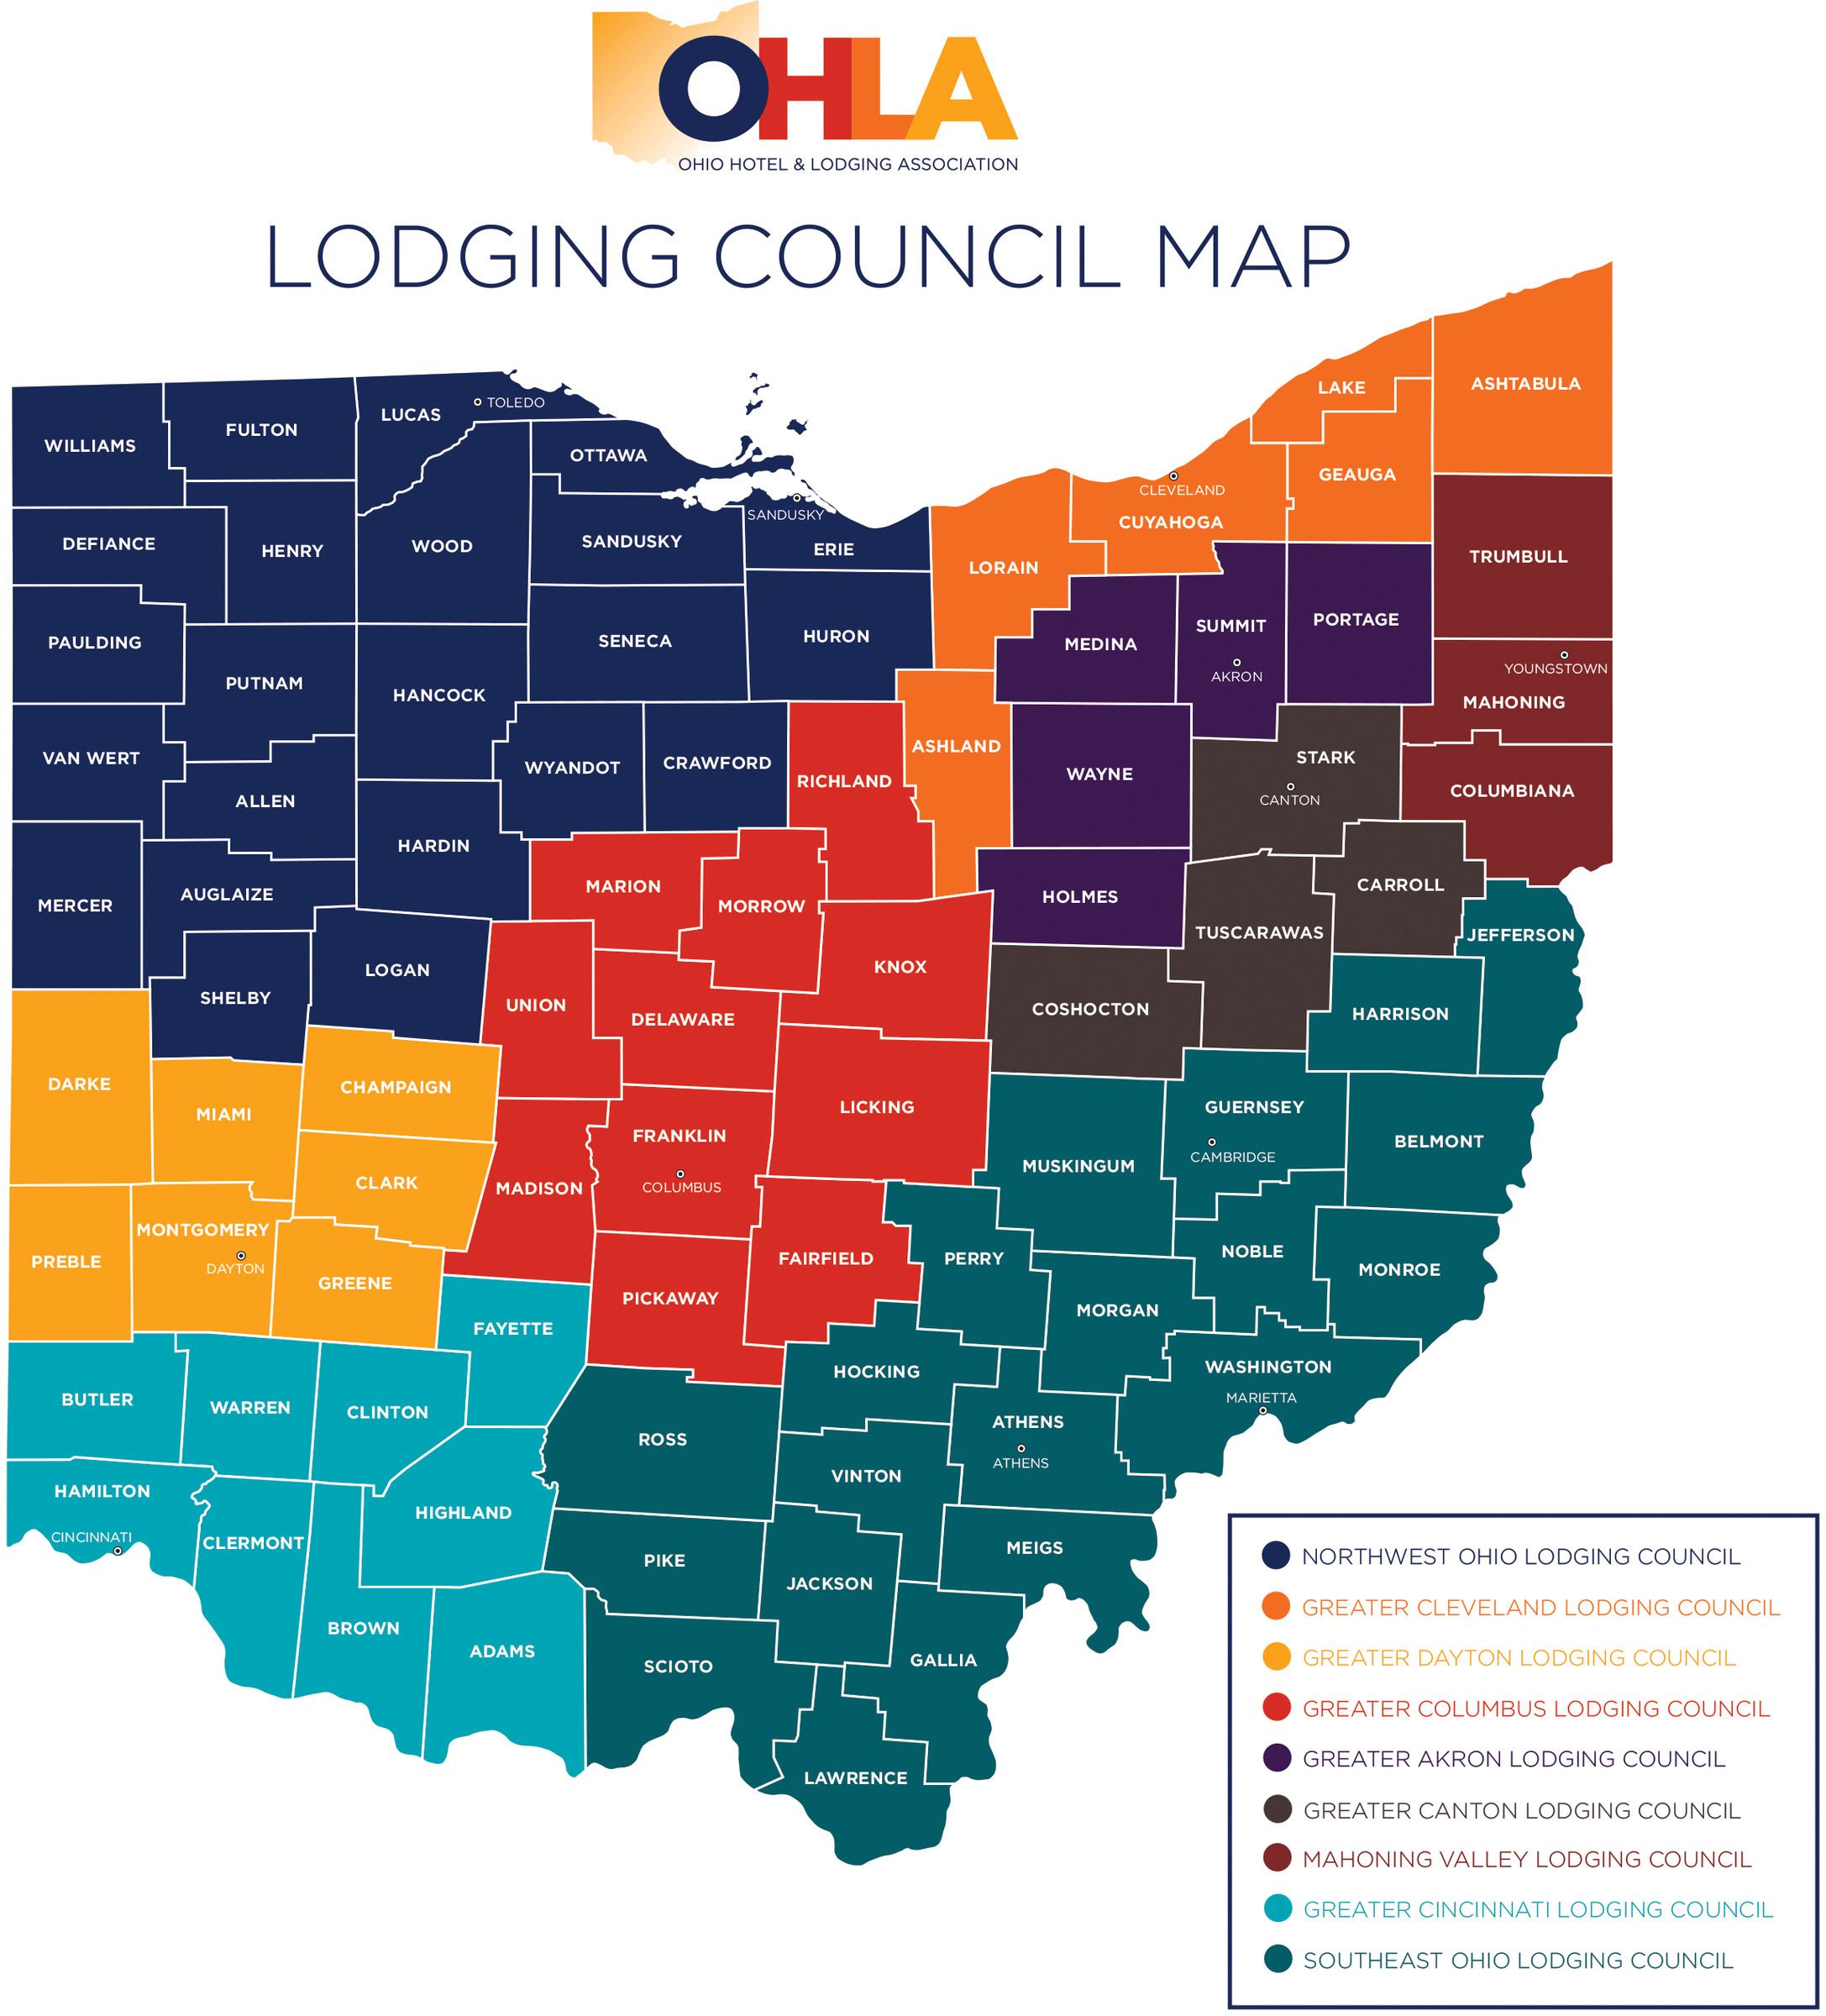 New OHLA Lodging Council Map